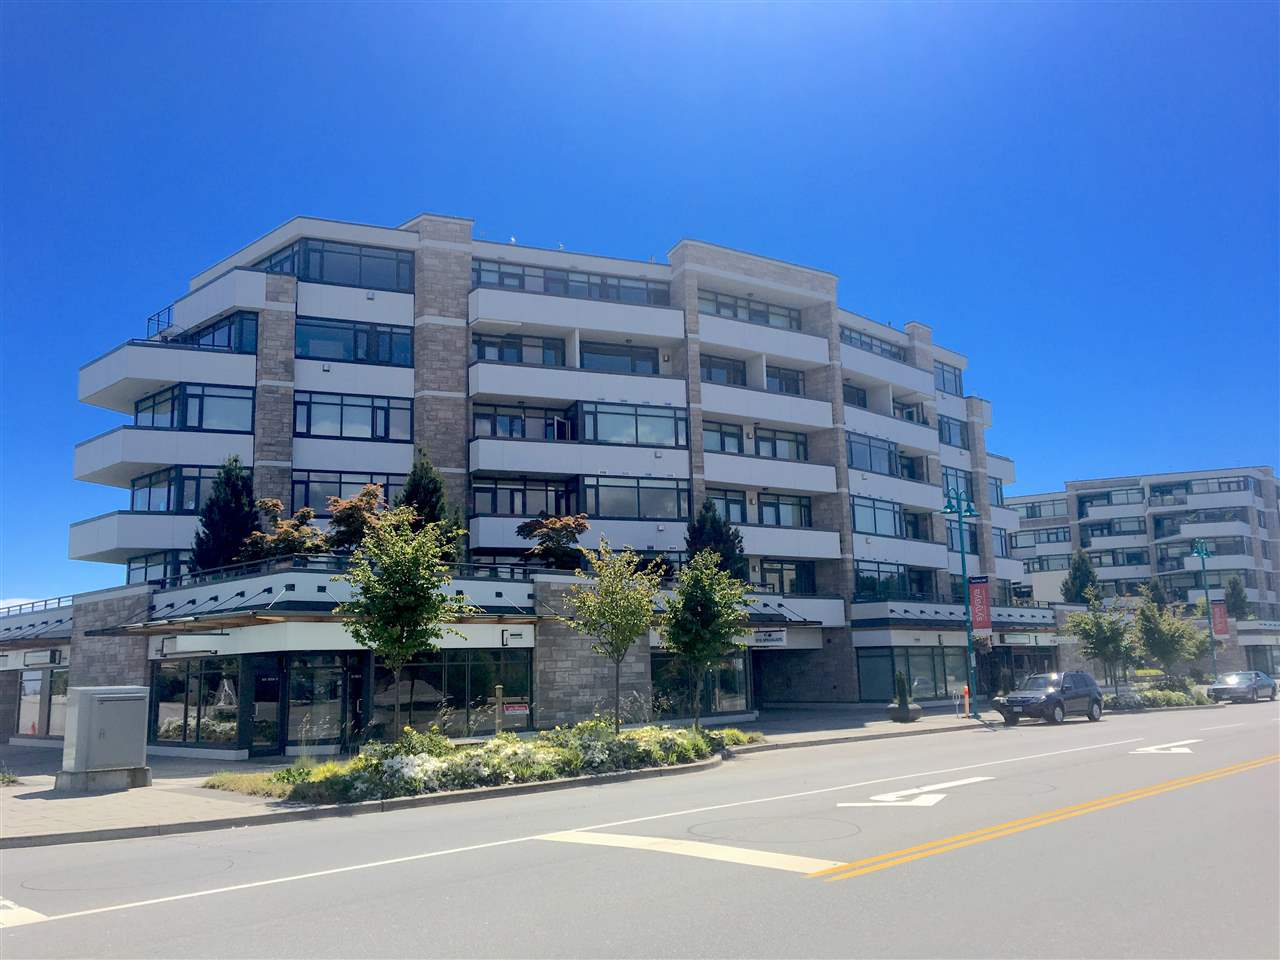 "Photo 2: Photos: 601 5665 TEREDO Street in Sechelt: Sechelt District Condo for sale in ""THE WATERMARK"" (Sunshine Coast)  : MLS® # R2174994"